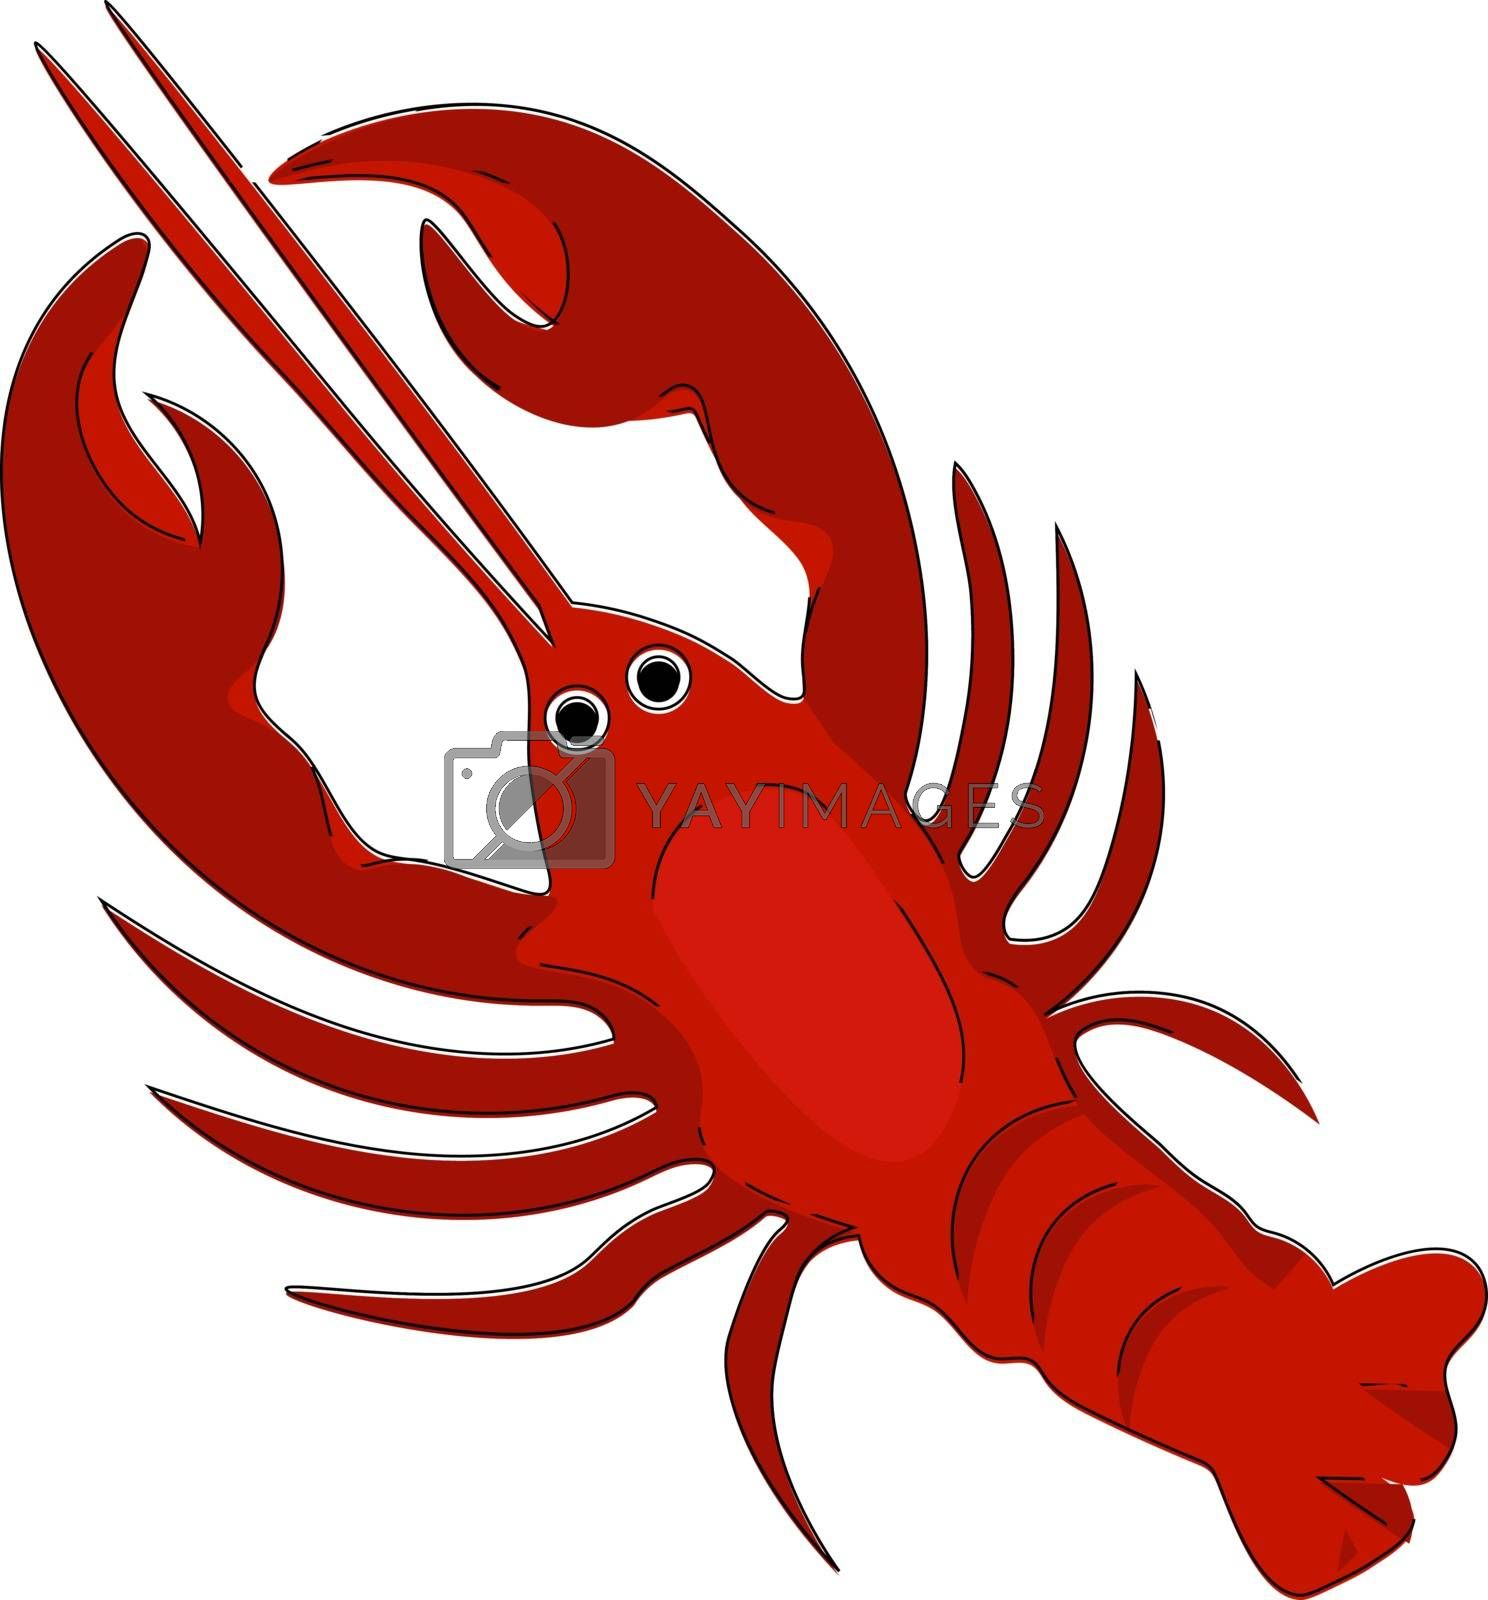 Royalty free image of Clipart of a red-colored lobster vector or color illustration by Morphart